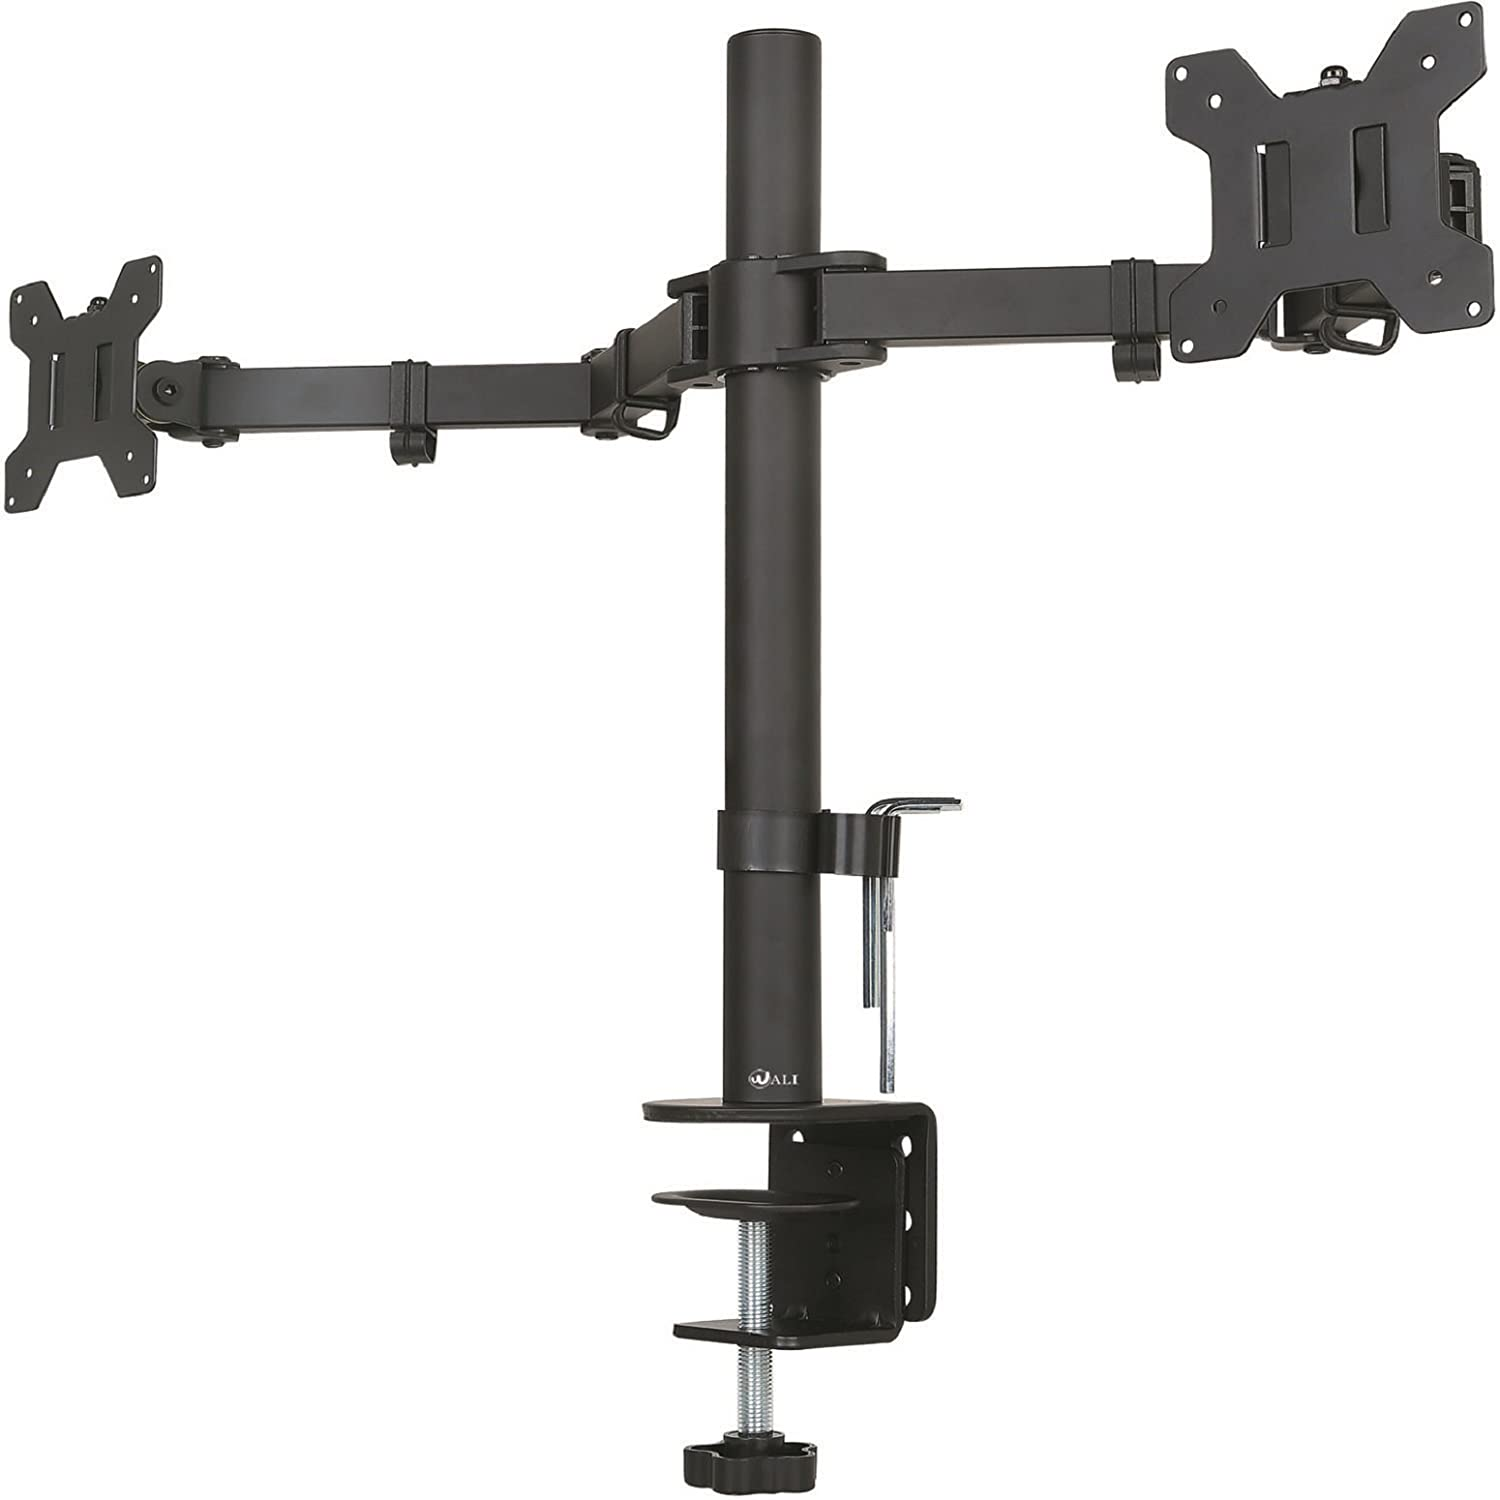 Amazoncom WALI Dual LCD Monitor Desk Mount Stand Fully